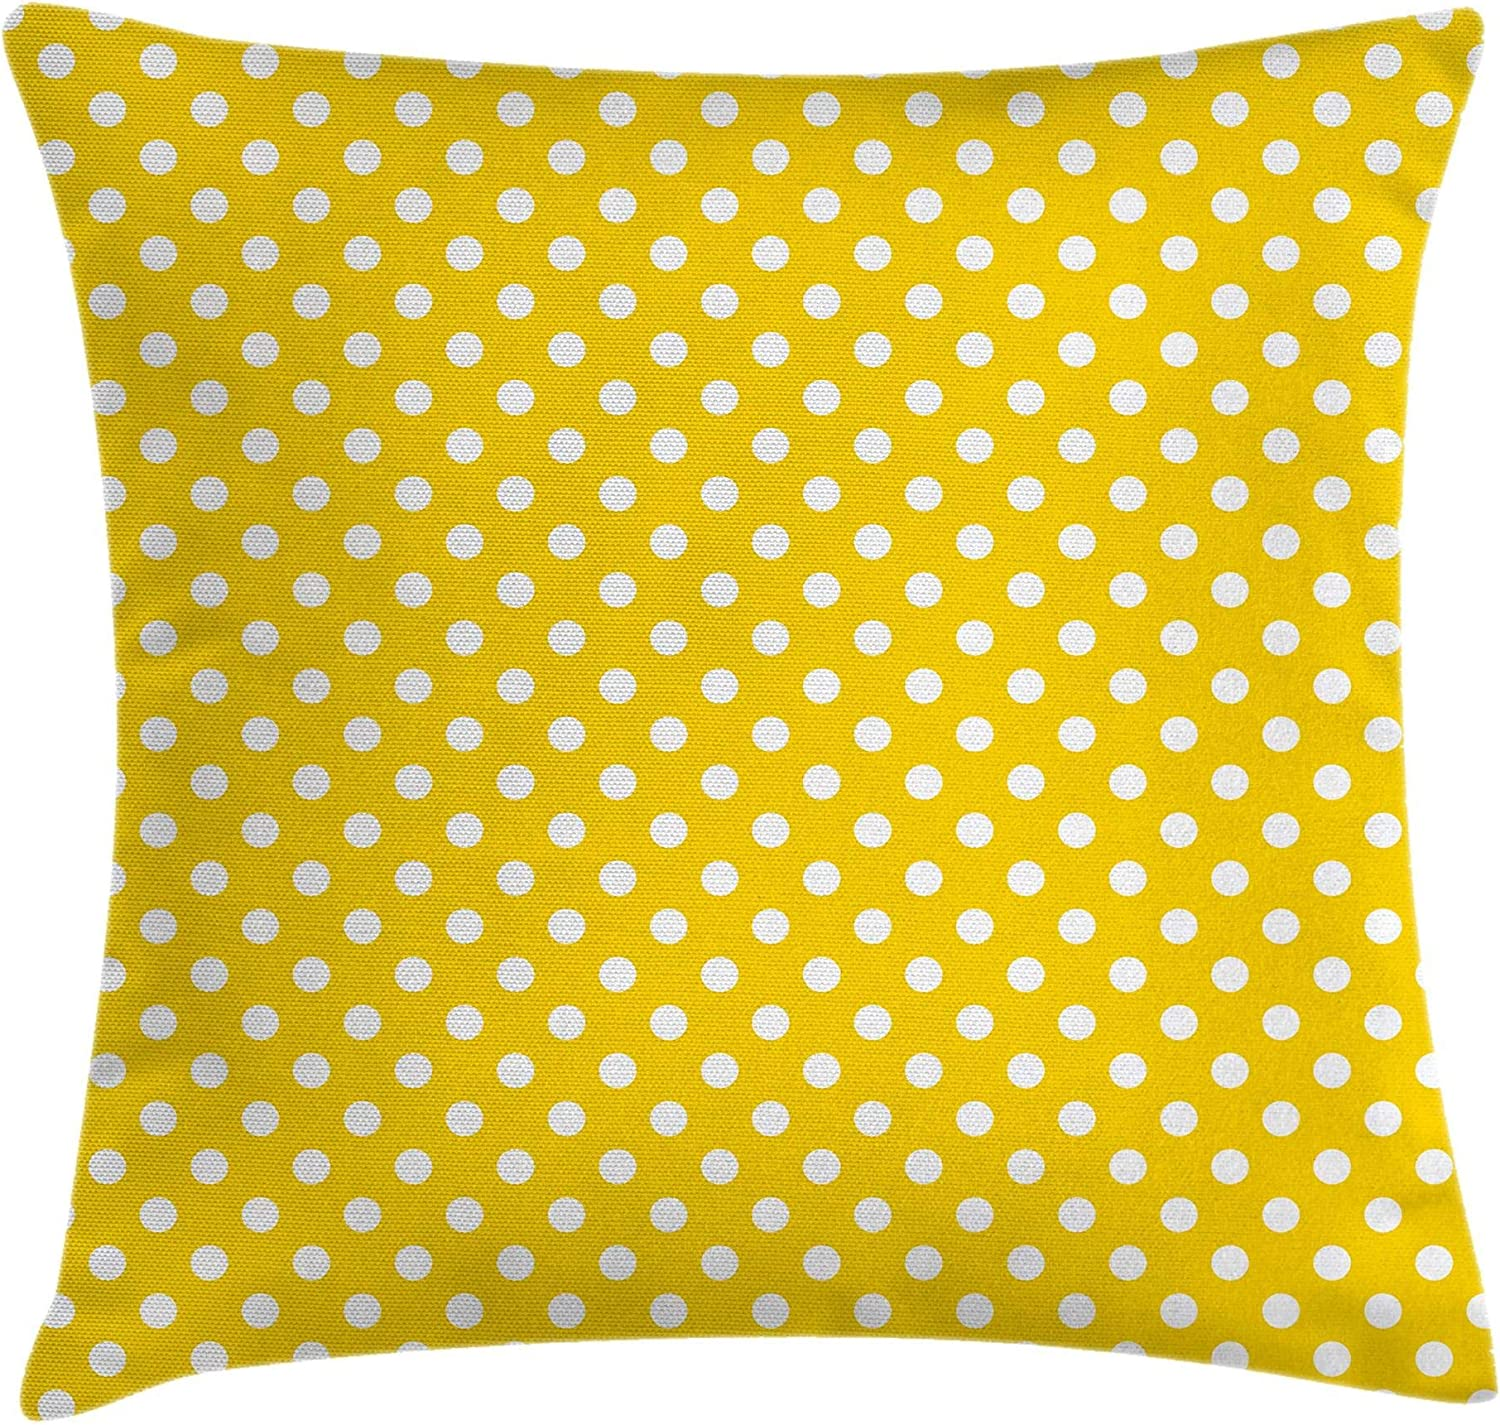 Ambesonne Yellow Throw Pillow Cushion Cover Picnic Inspired 50s 60s 70s Themed Polka Dot Retro Spotted Pattern Print Decorative Square Accent Pillow Case 24 X 24 Yellow White Home Kitchen